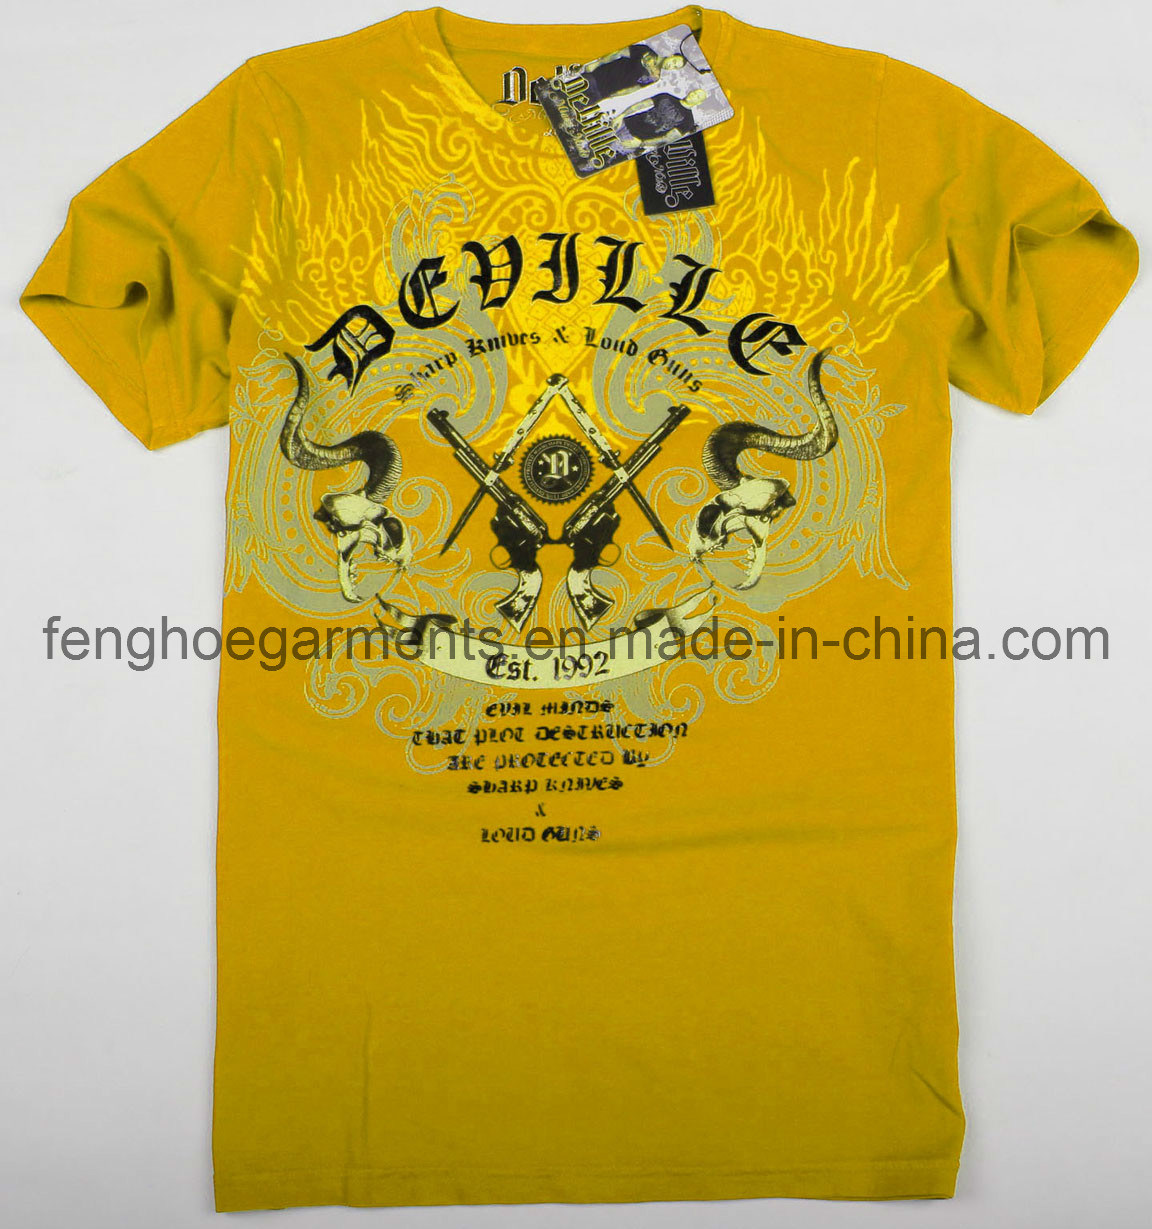 Setbackgunm promotional t shirt printing china T shirt printing china